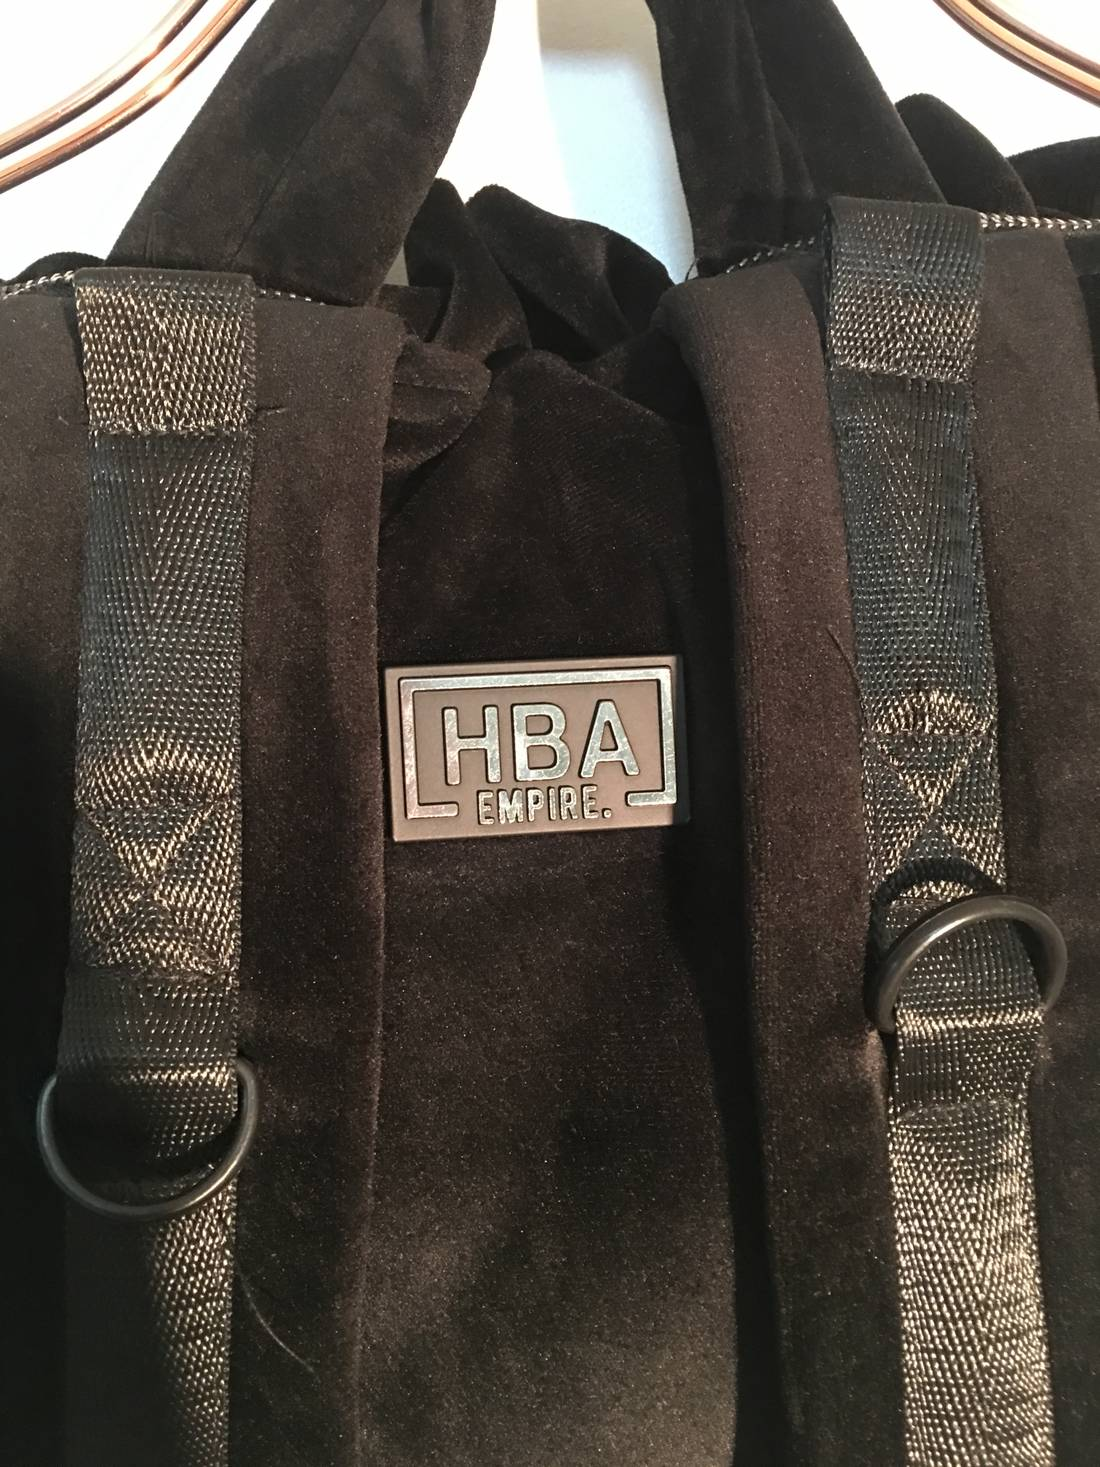 Backpack Pillow Hood By Air Velvet Pillow Backpack Size One Size Bags Luggage